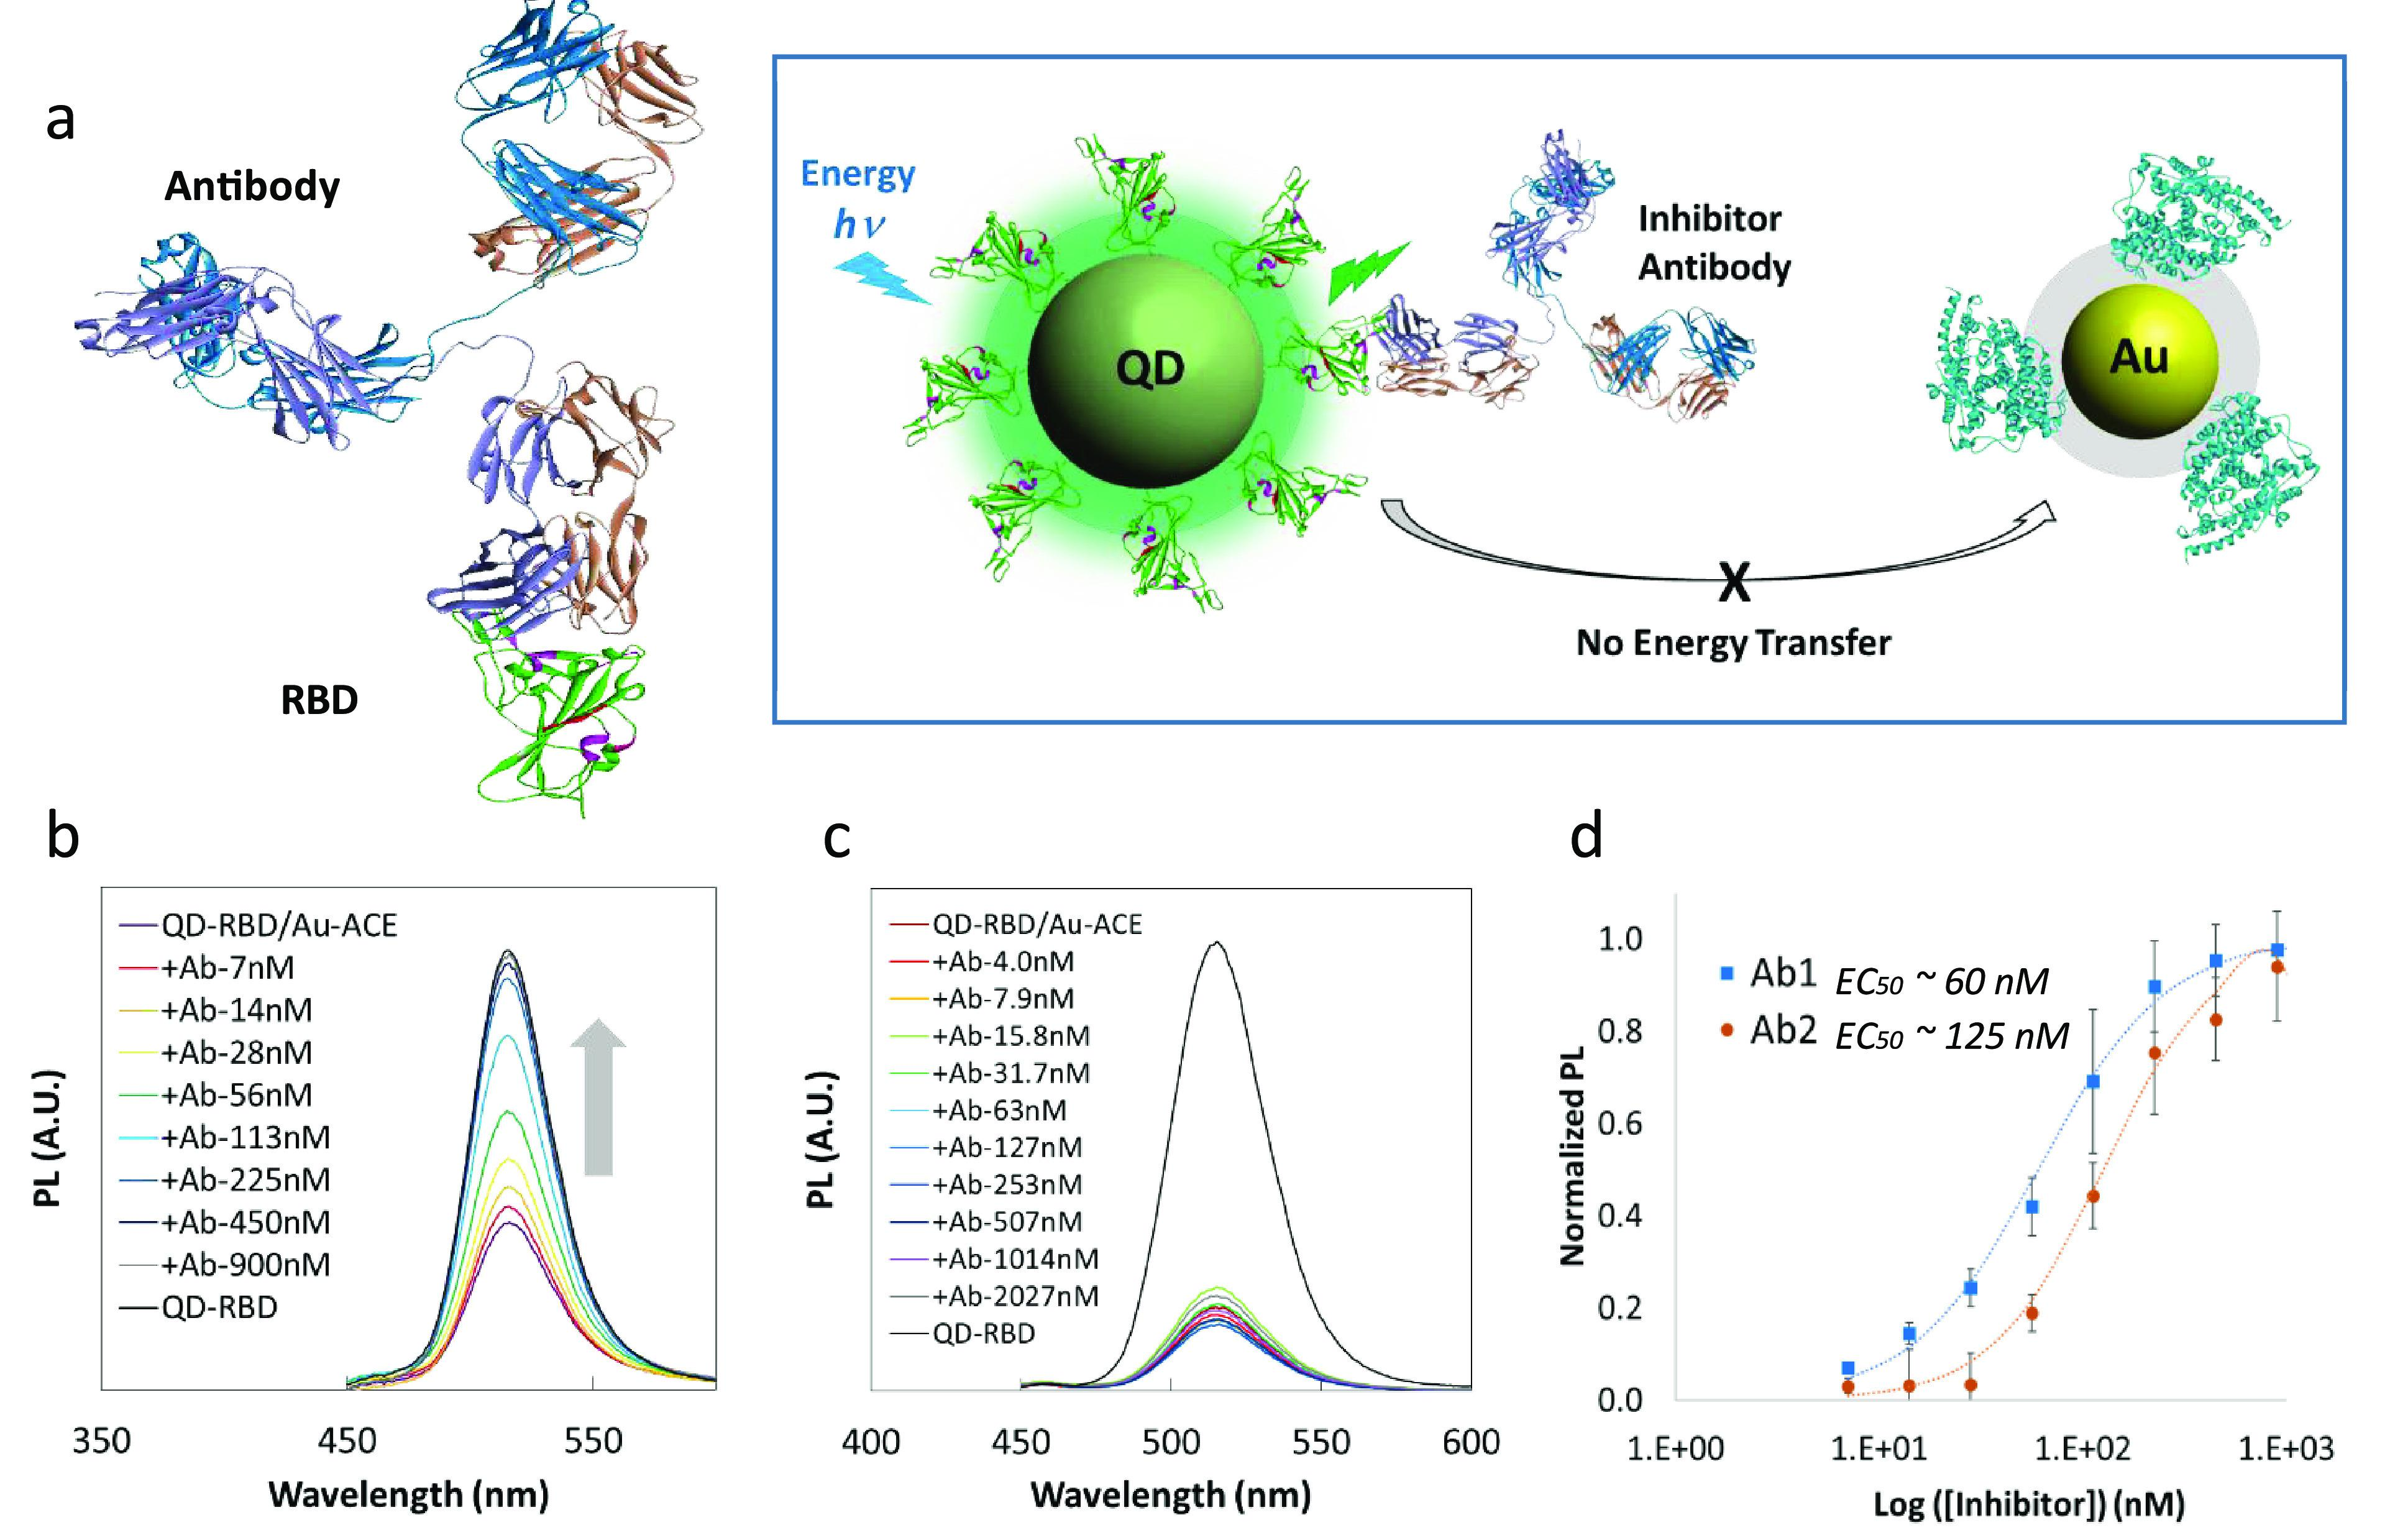 NP-based inhibition assay. (a) Left: The structure of neutralizing antibody (top) bound to SARS-CoV-2 Spike RBD (bottom, green). Right: Schematic diagram of the inhibition assay depicting blocking of the interaction between RBD and ACE2 and the resulting inhibition of energy transfer from QD to AuNP. (b) PL recovery of QD 514 -RBD in the presence of neutralizing antibody Ab1. (c) Inhibition test using anti-Spike antibody without neutralizing ability, showing almost no PL recovery of QD 514 -RBD. (d) Calculated EC 50 s for neutralizing antibodies Ab1 and Ab2 were 60 nM and 125 nM with R 2 > 99%, respectively.